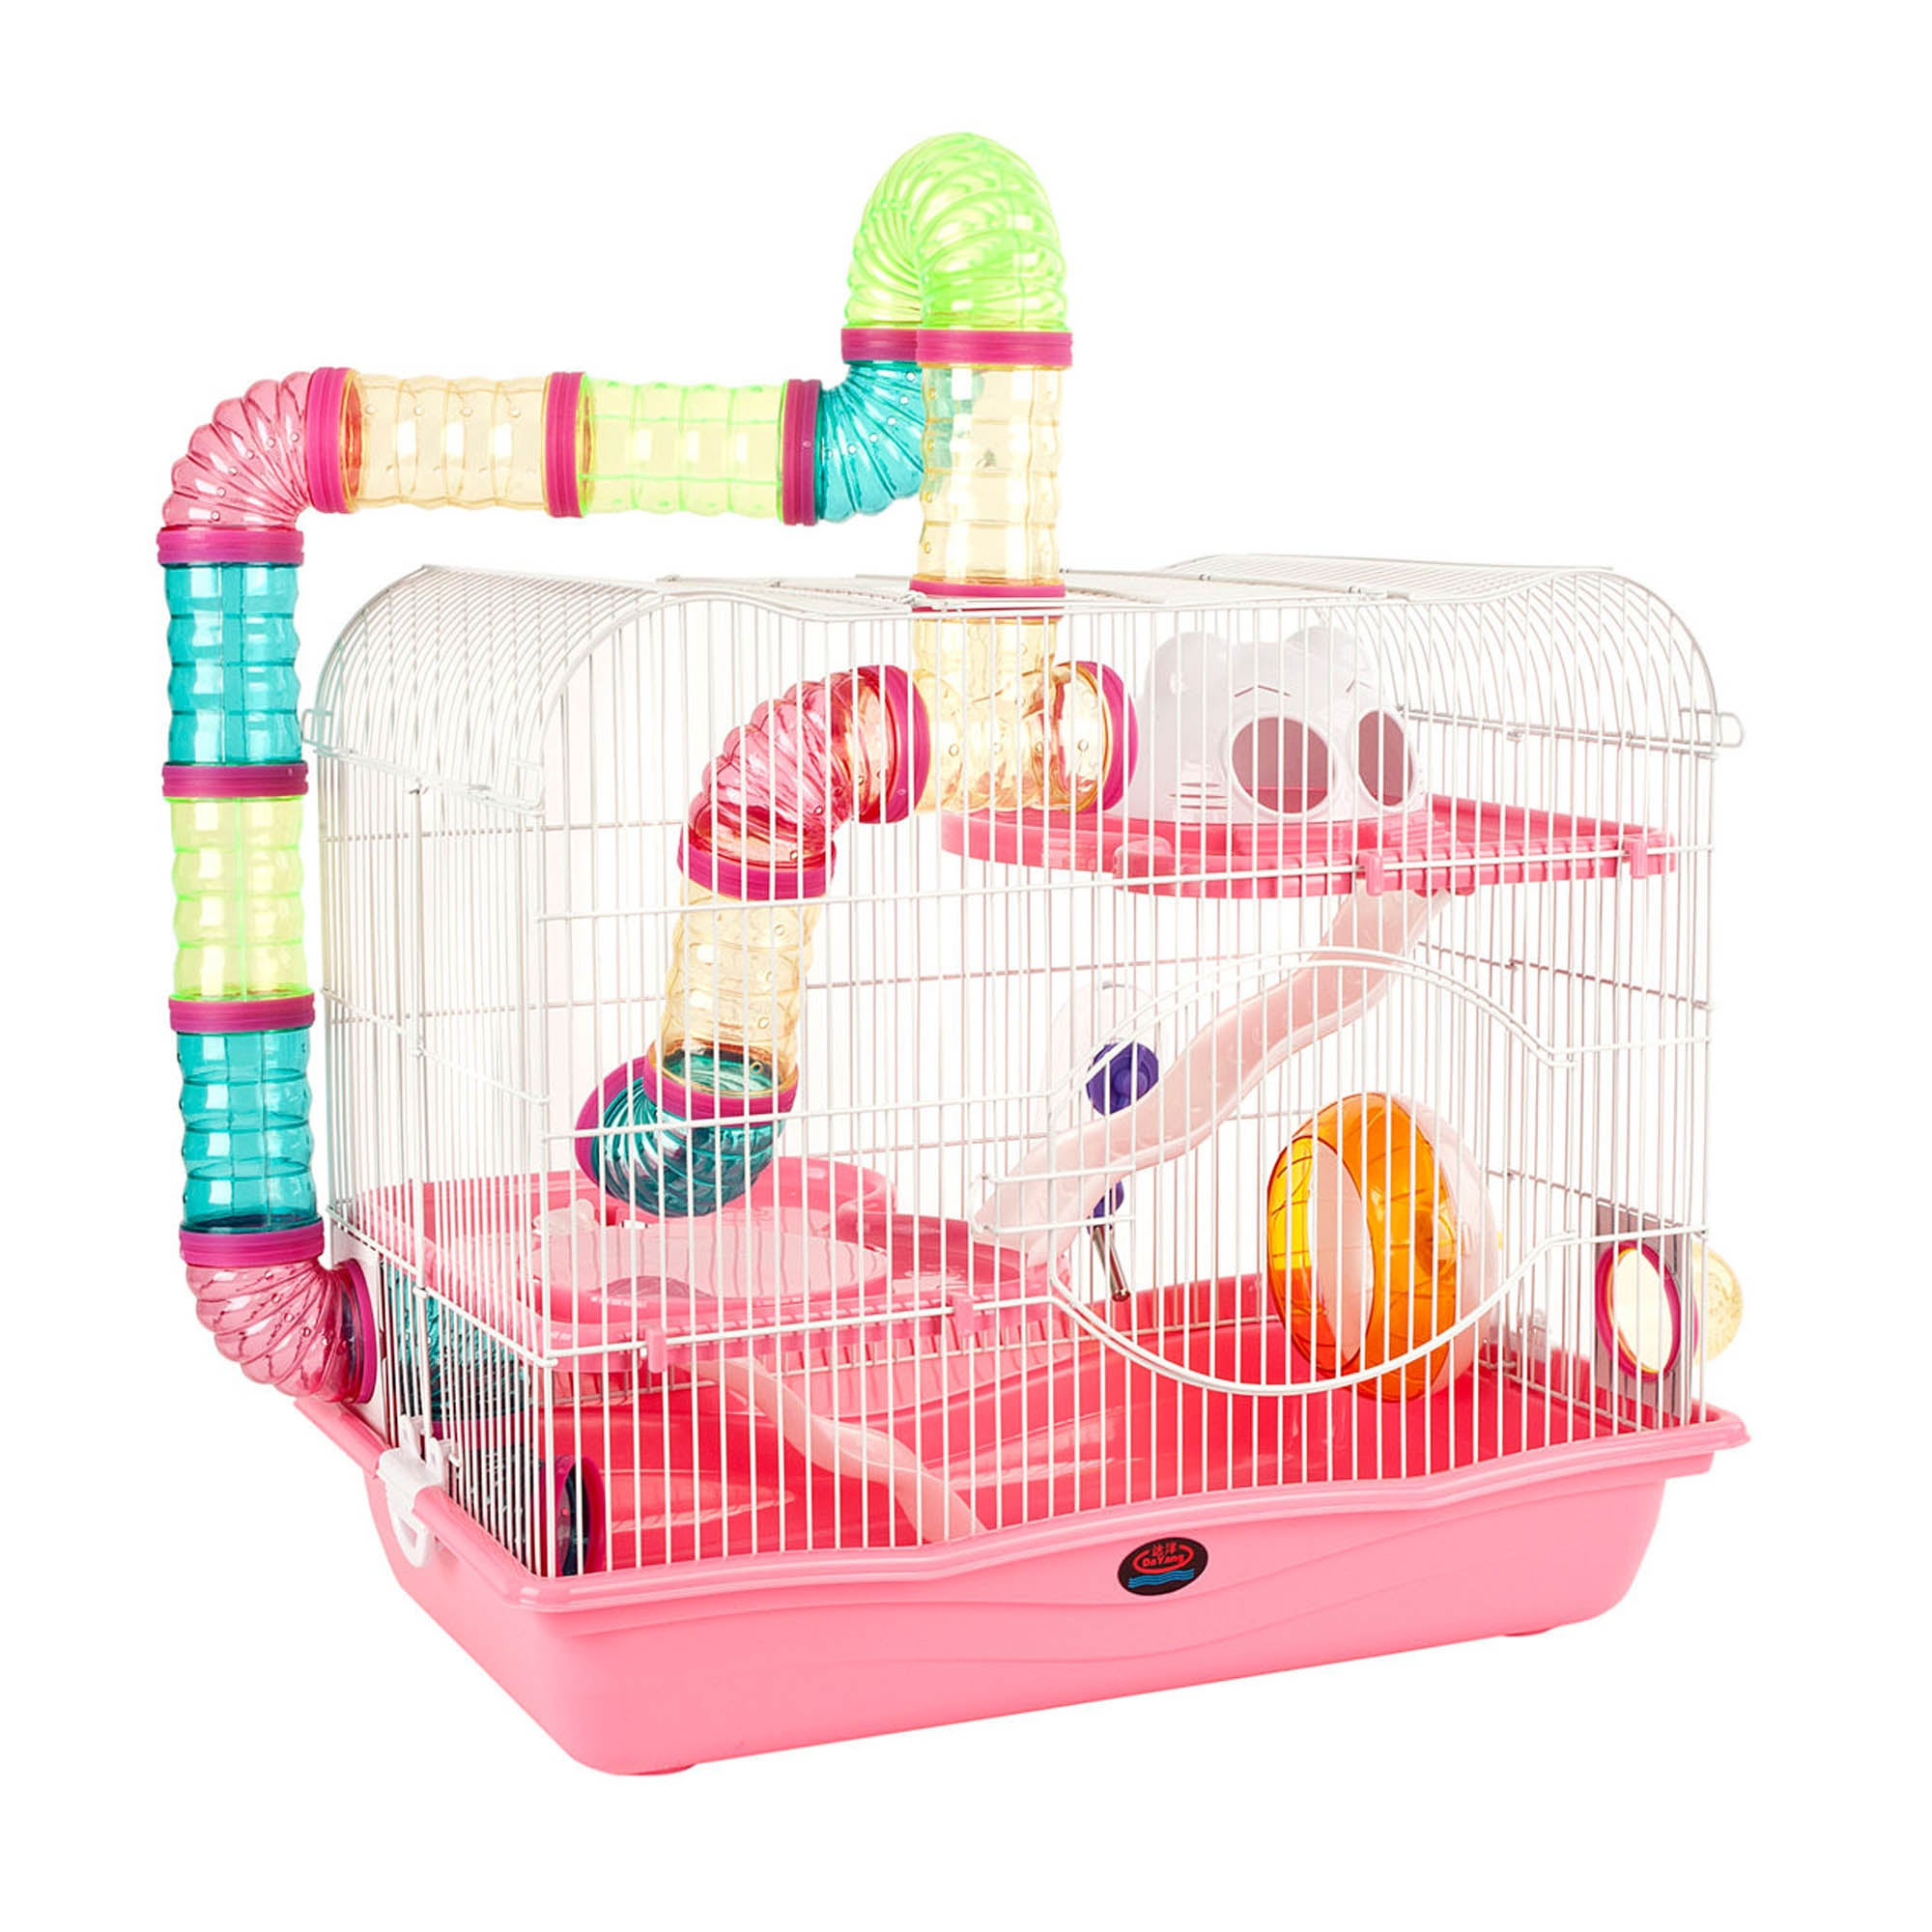 Harvey Pink Hamster Cage Strawberry (Pink)